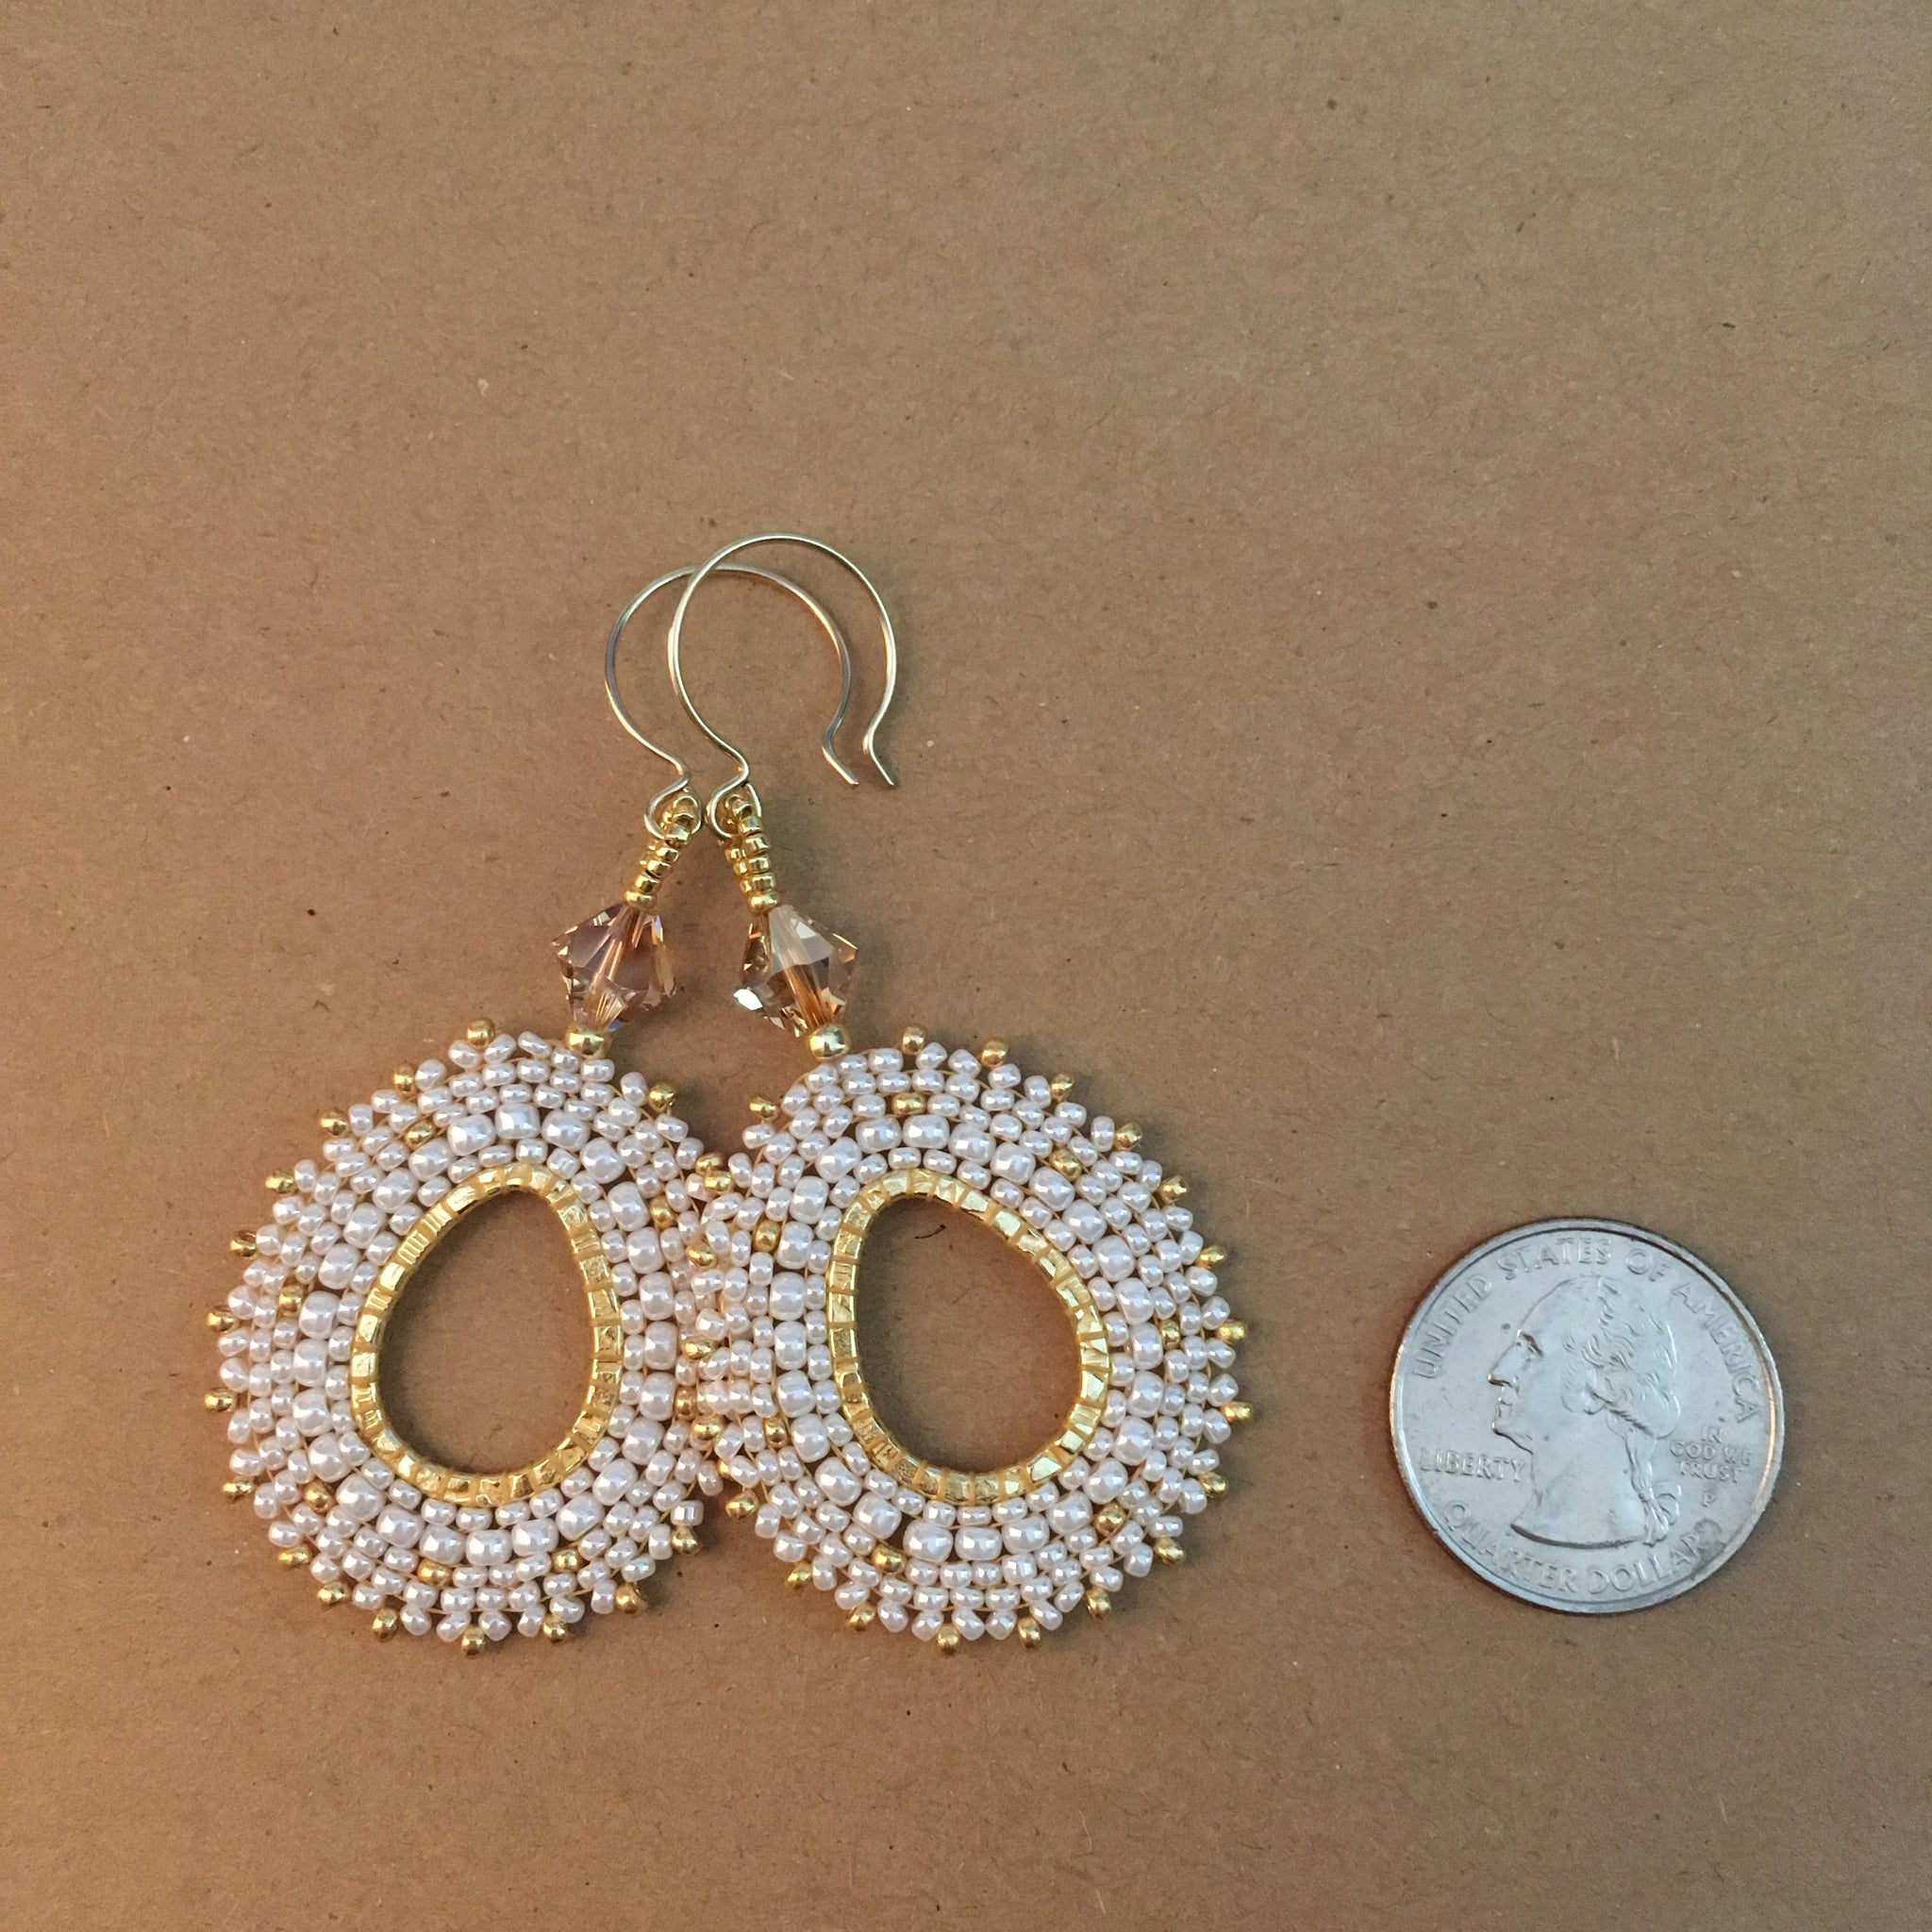 Pearly White and Gold Oval Hoop Beaded Earrings with Swarovski™ Crystals